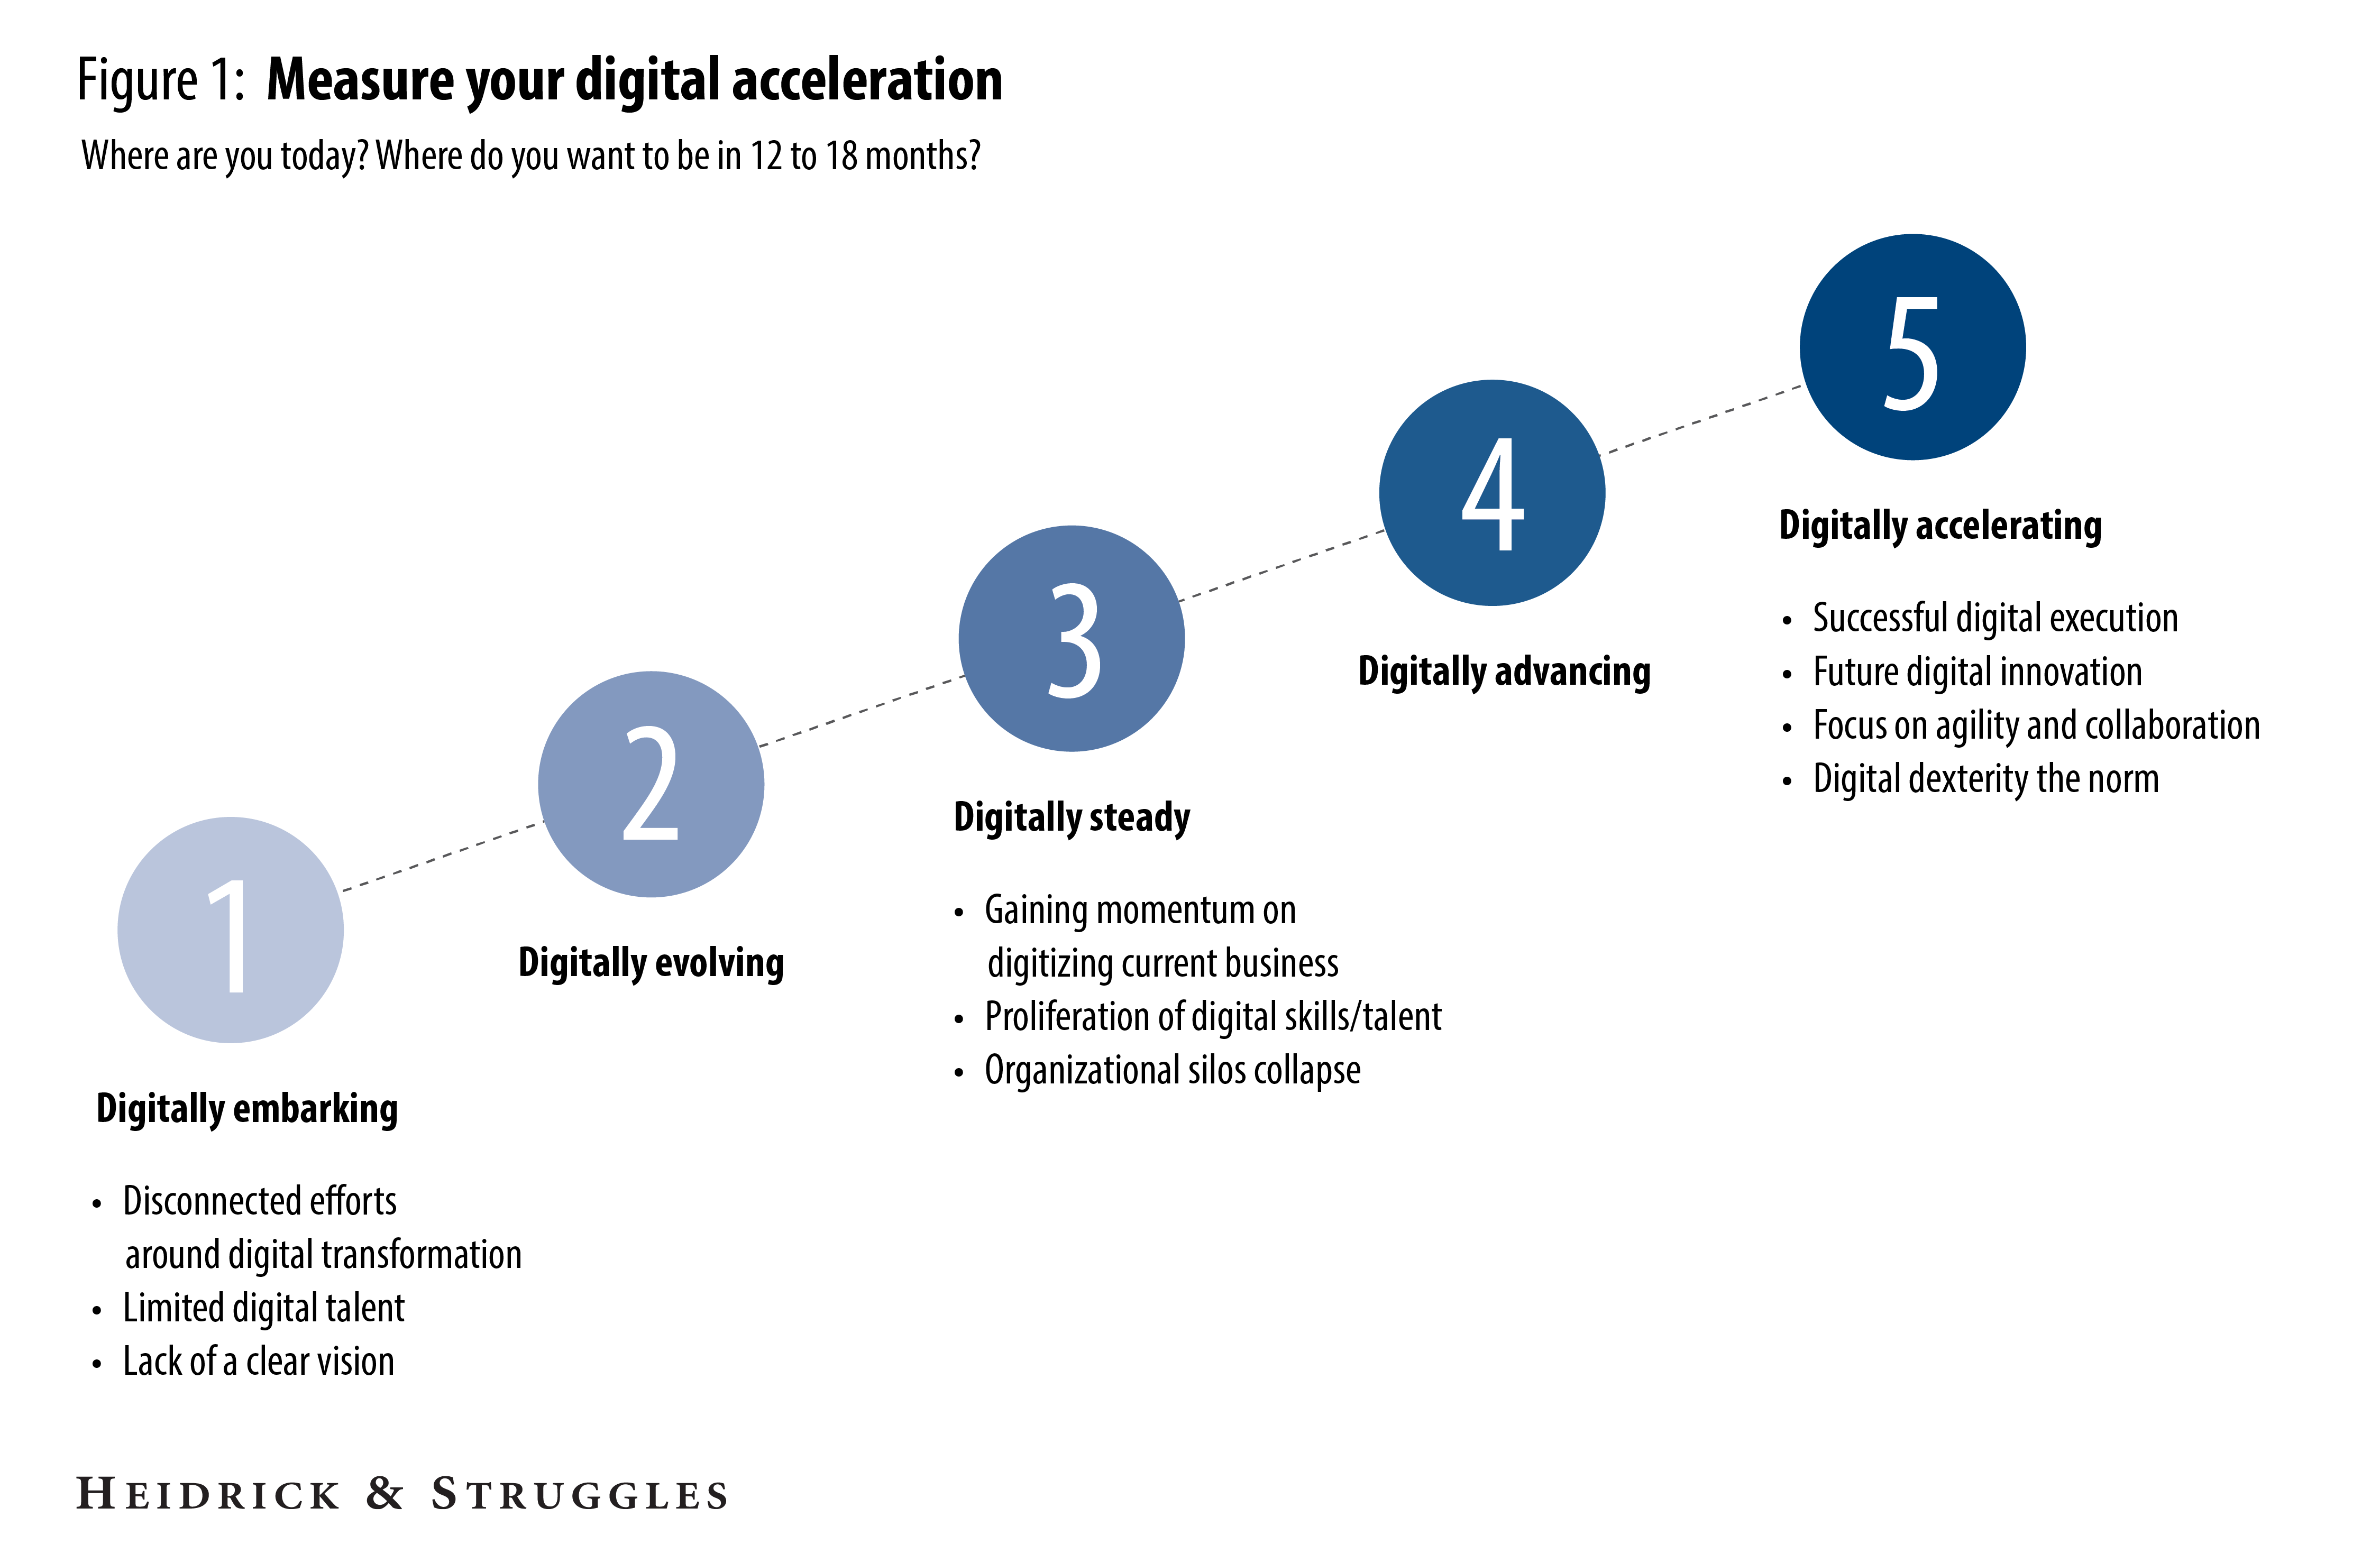 Digital acceleration: The right C-suite expertise